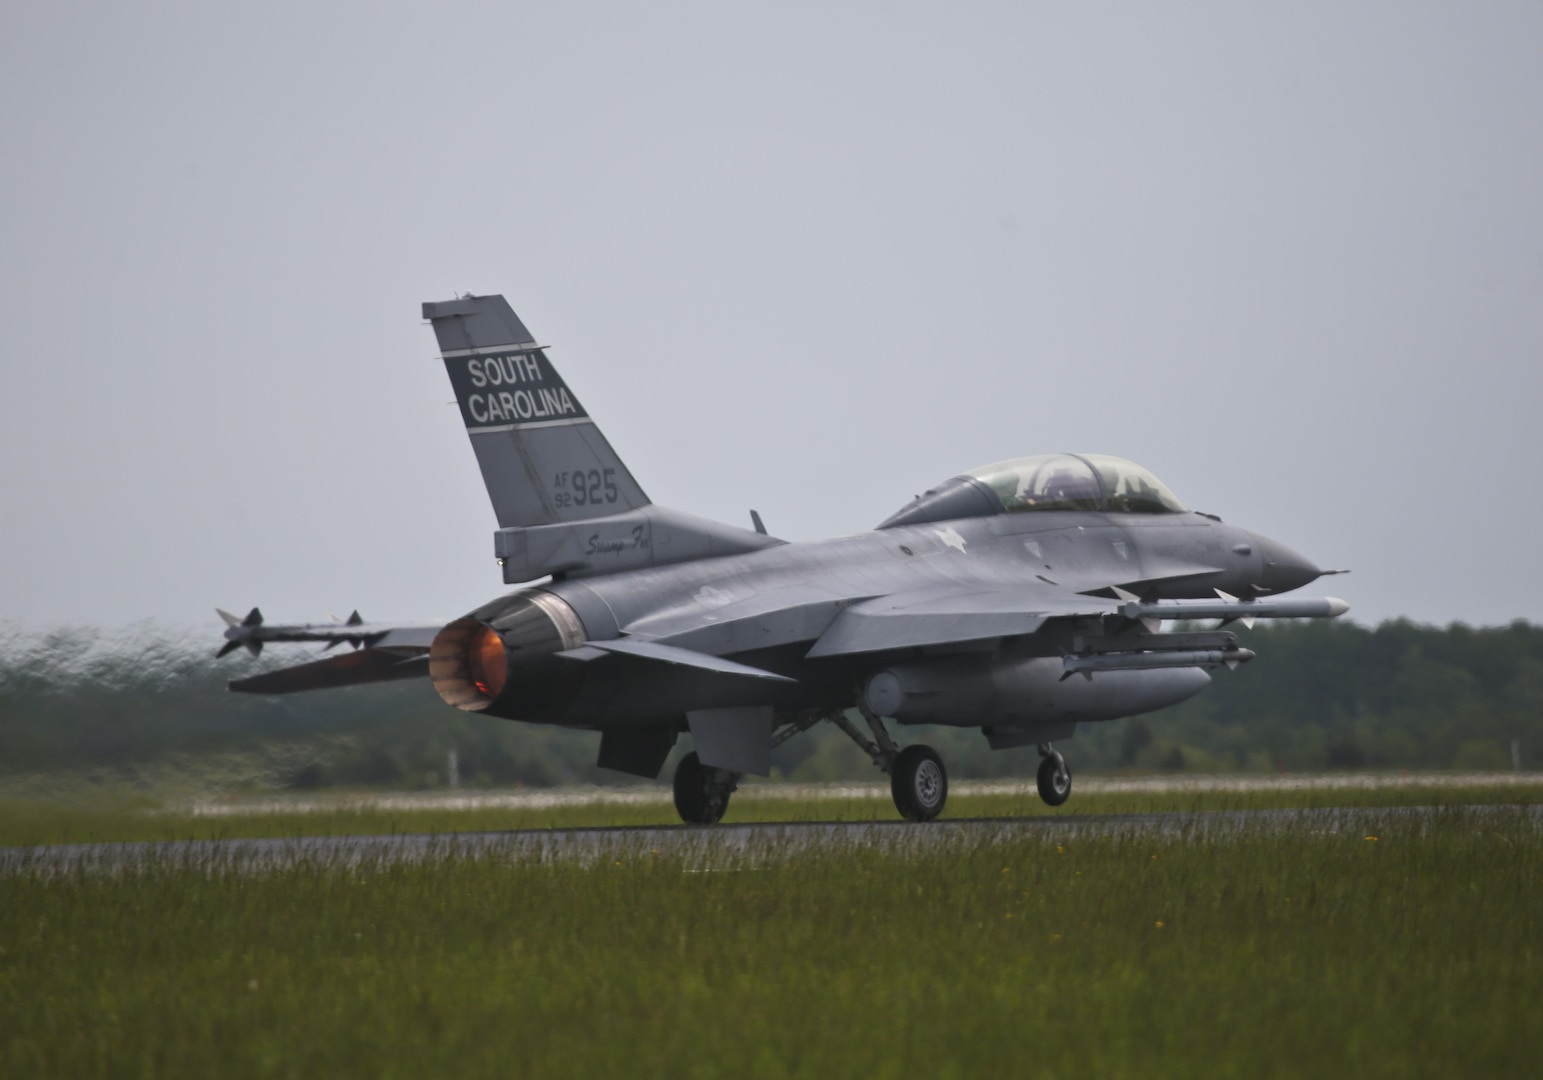 A South Carolina Air National Guard F-16D Fighting Falcon from the 169th Fighter Wing takes off for a flight during a three-day Aeropsace Control Alert CrossTell live-fly training exercise at Atlantic City Air National Guard Base, N.J., May 23, 2017. Representatives from the Air National Guard fighter wings, Civil Air Patrol, and U.S. Coast Guard rotary-wing air intercept units will conduct daily sorties from May 23-25 to hone their skills with tactical-level air-intercept procedures. (U.S. Air National Guard photo by Master Sgt. Matt Hecht/Released)